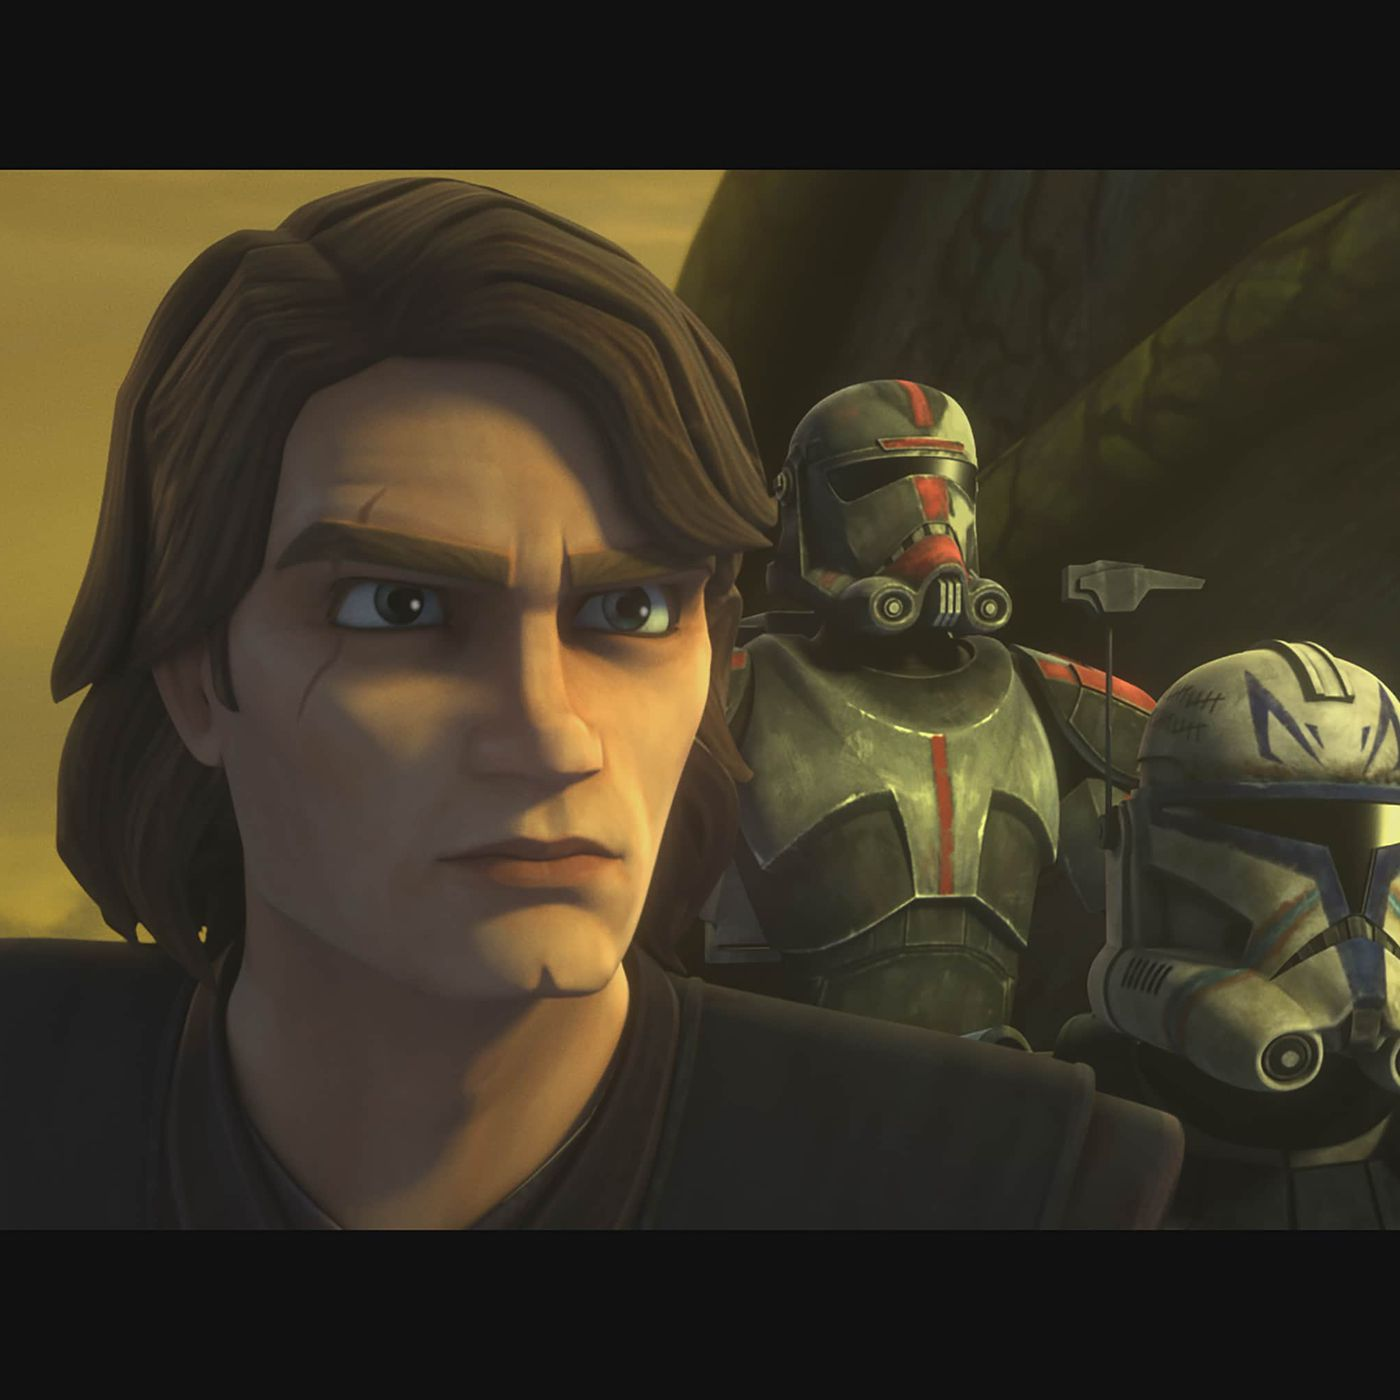 The Clone Wars Episode 7 2 Review A Distant Echo Shows Faith